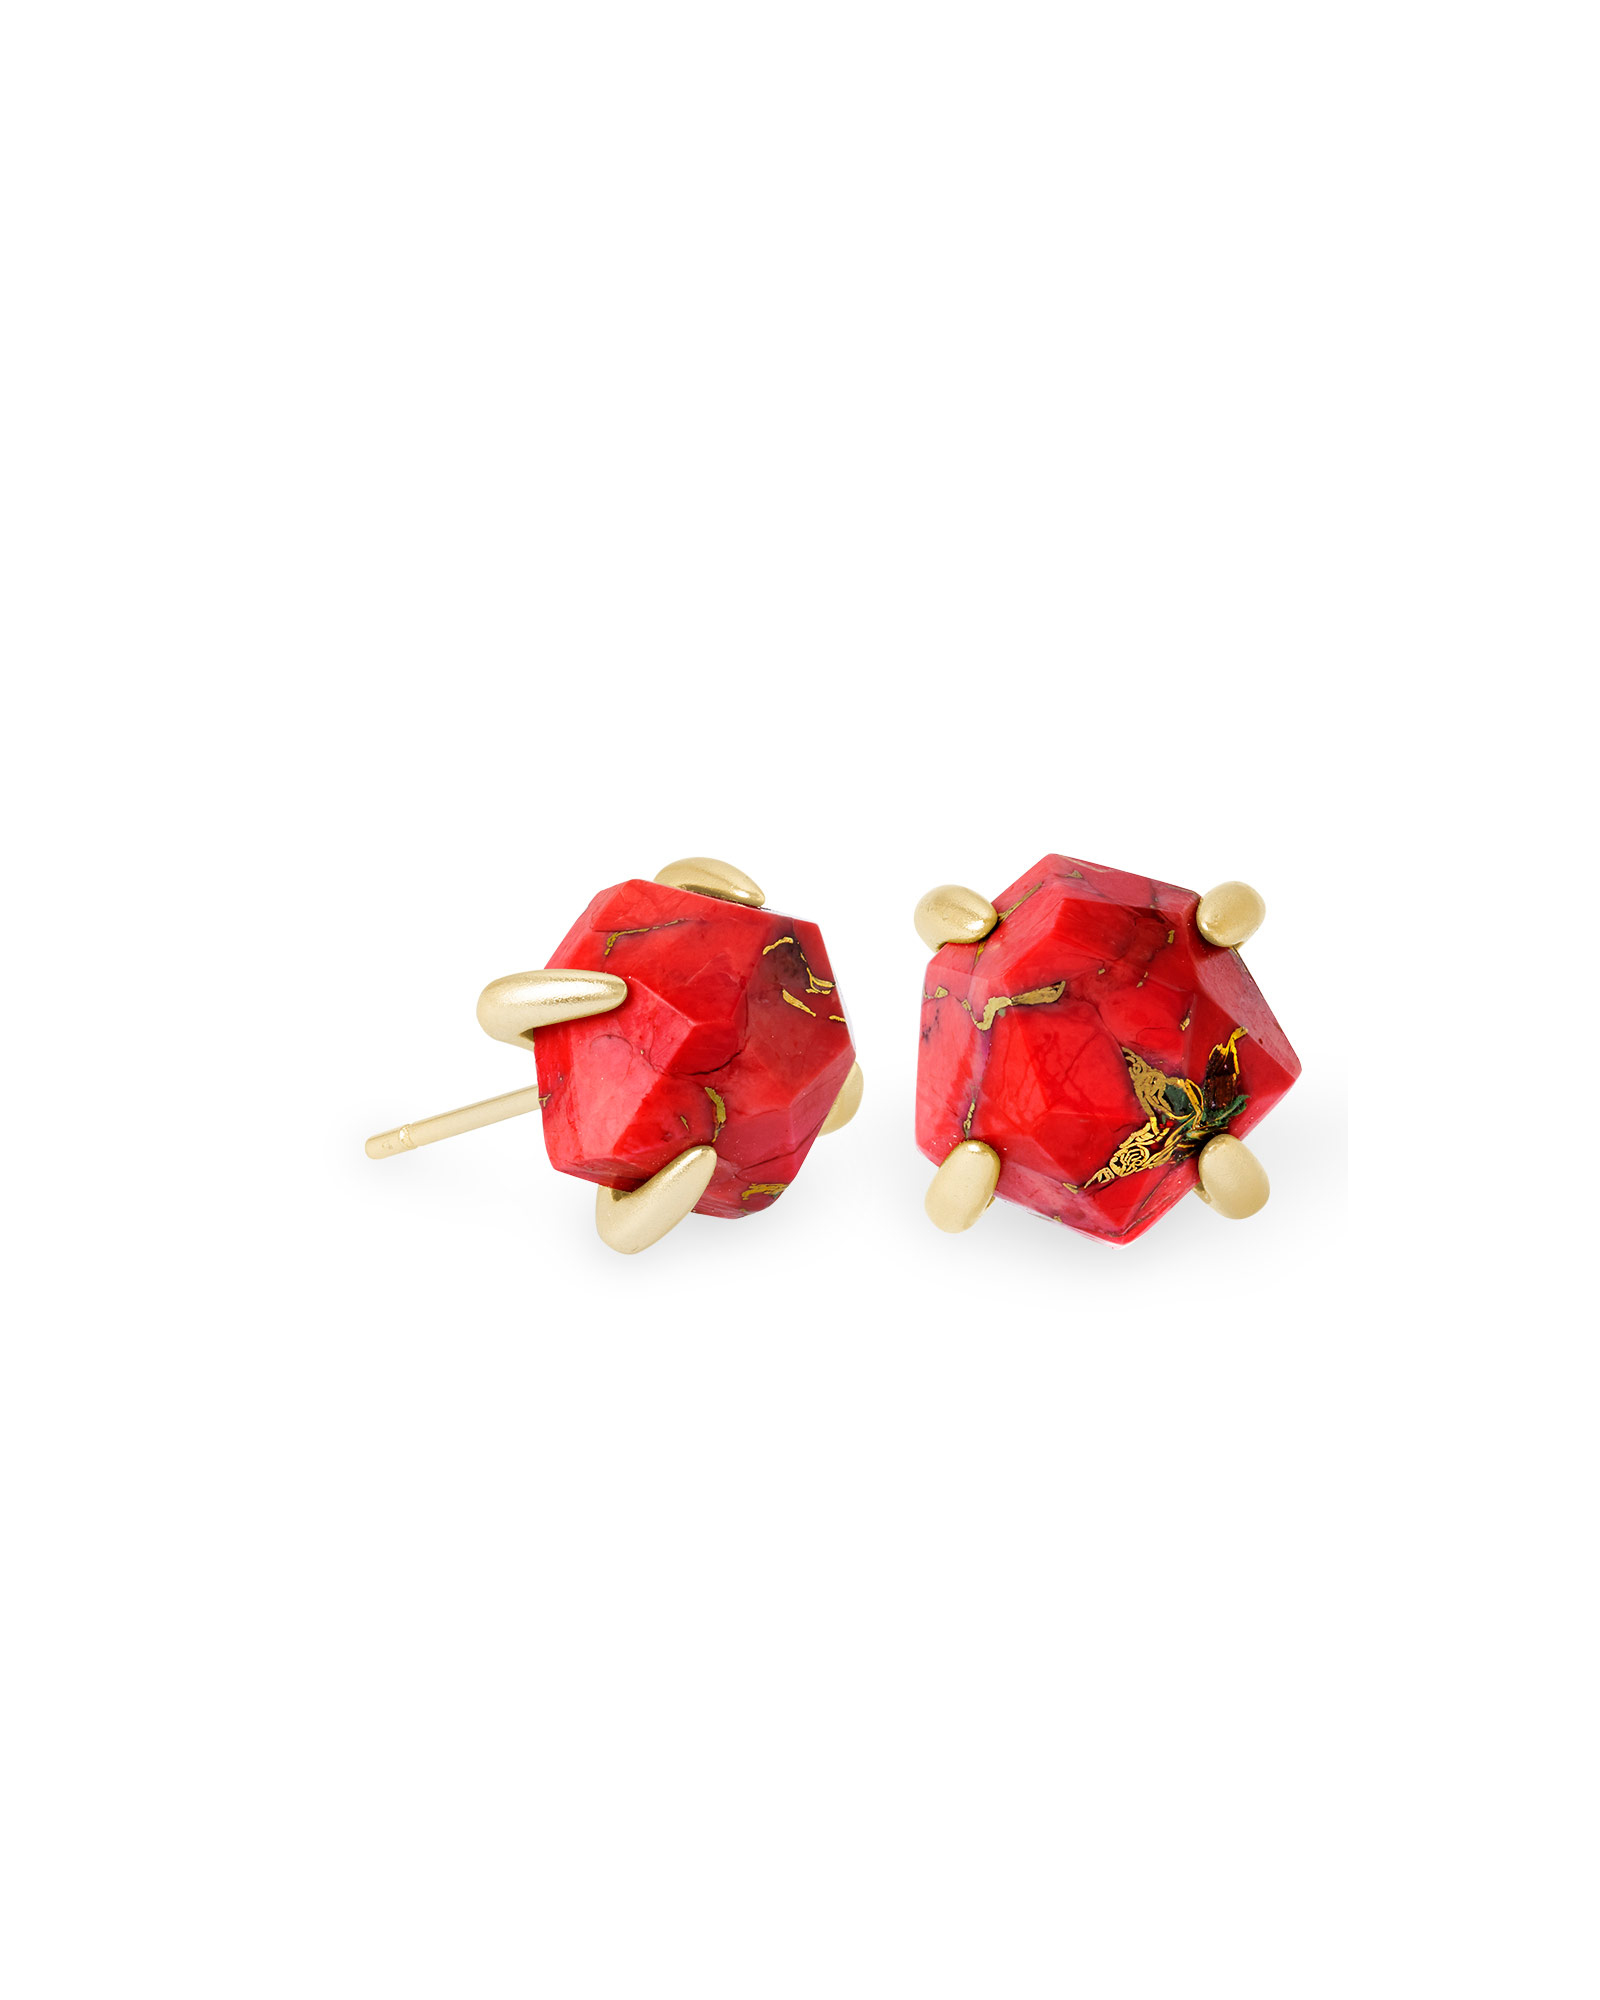 Ellms Gold Stud Earrings in Bronze Veined Red Magnesite